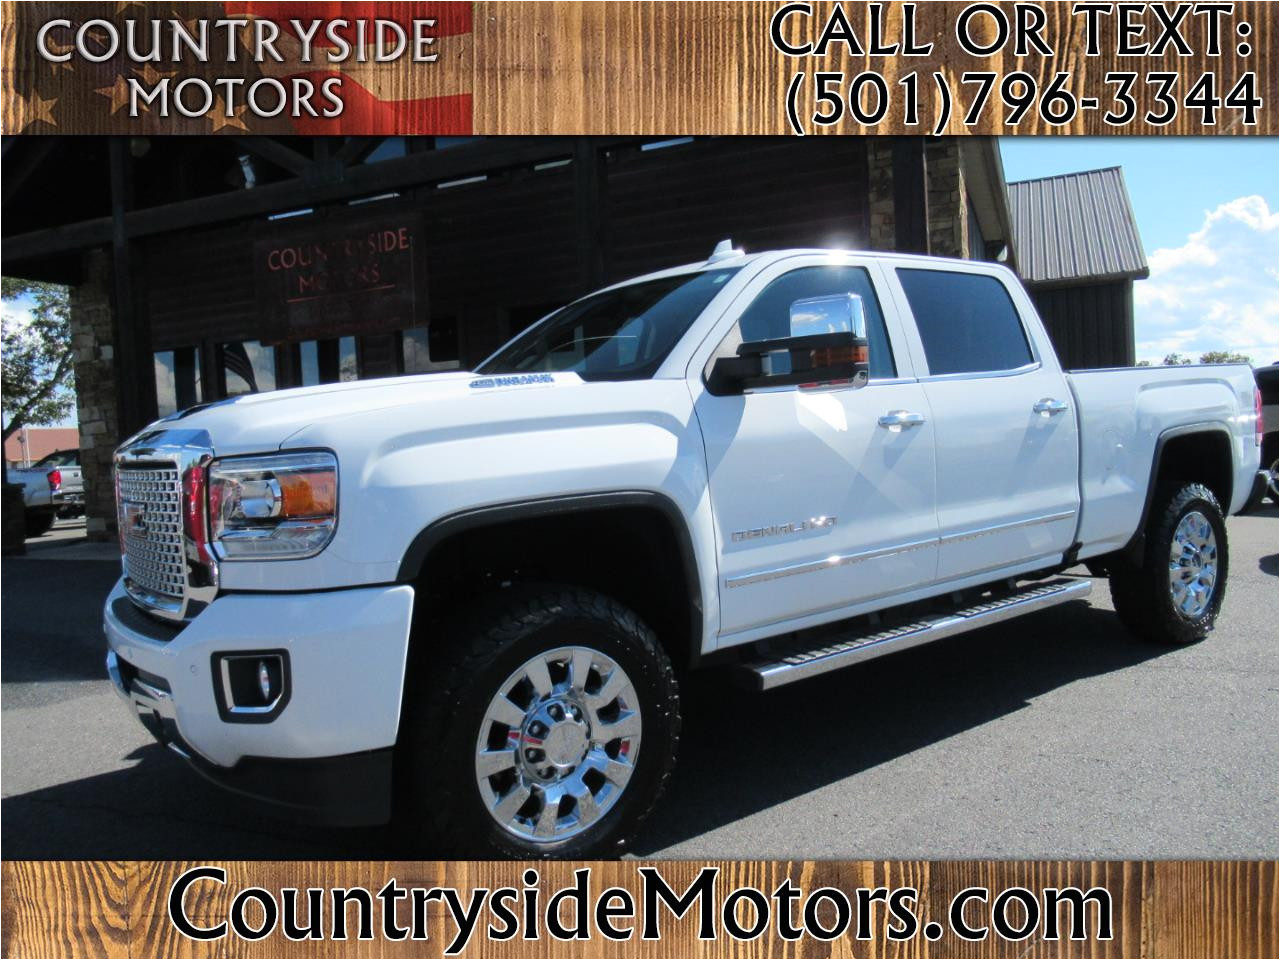 Tire Shop Conway Ar Used Cars for Sale Conway Ar 72032 Countrysidemotors Com